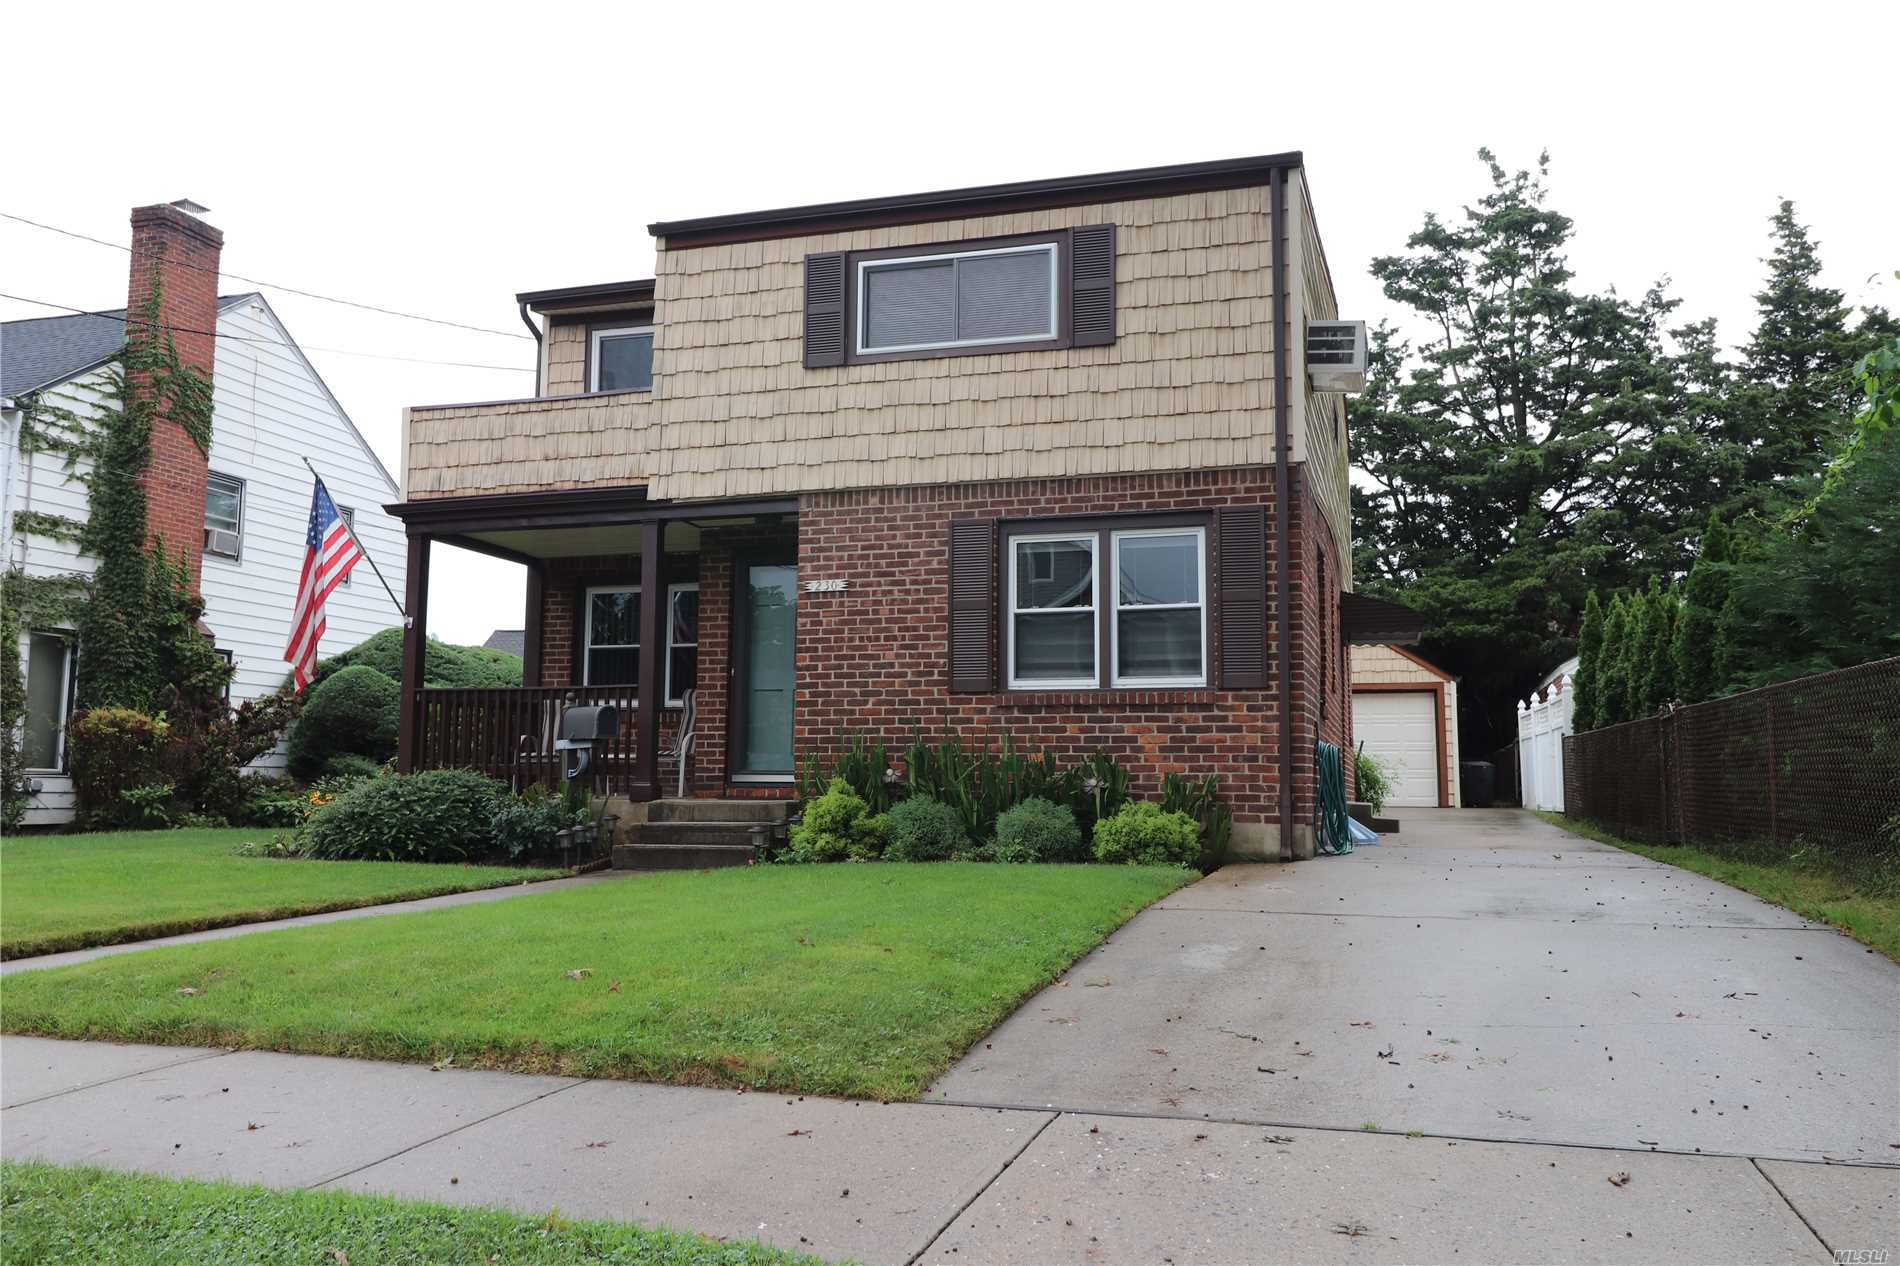 Incredibly Updated & Large Home In Mineola Close To All! Conv. To Hwy's & Pub Trans! Home Boasts Meticulous Updates & Finishes W/ 4 Large Bedrooms, 2 Full Baths, Gorgeous Kitchen W/Gas Cooking, Formal Dining Room, Lrg Living Room, Fin Basement W/Work Area, Lower Level Laundry W/Add'l 2nd Floor Laundry Area For A Later Date, 2nd Flr Den Or Add'l Bedroom Space & More!*1.5 Car Det Garage W/Pvt Driveway Parking For 5+ Vehicles*Mother-Daughter If W/Proper Permits*Great Outdoor Entertaining Space